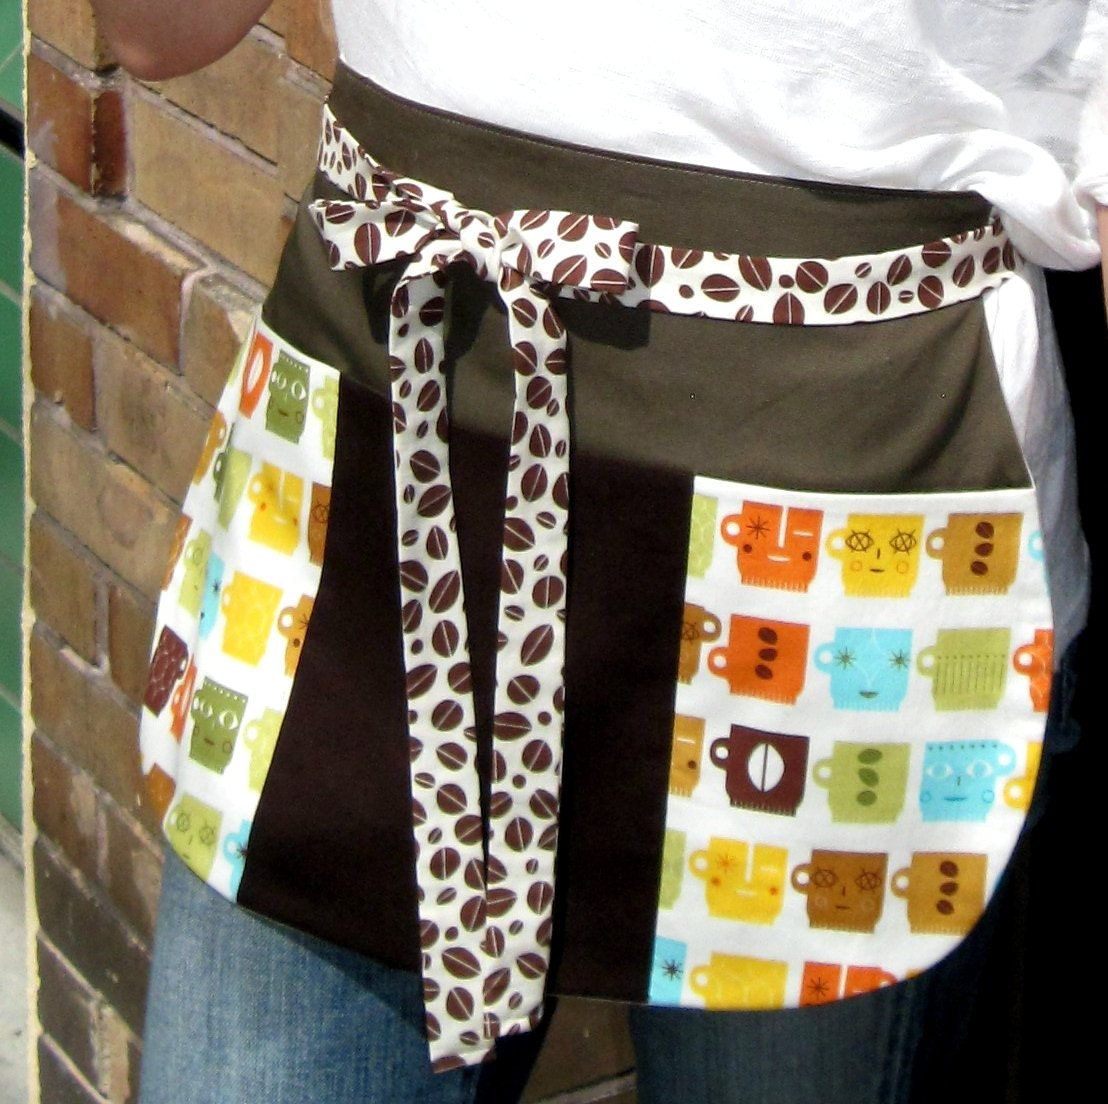 New Item, Coffee Cup Utility Apron for Cafe Servers, Baristas and Coffee Lovers in Avocado, Orange and Brown